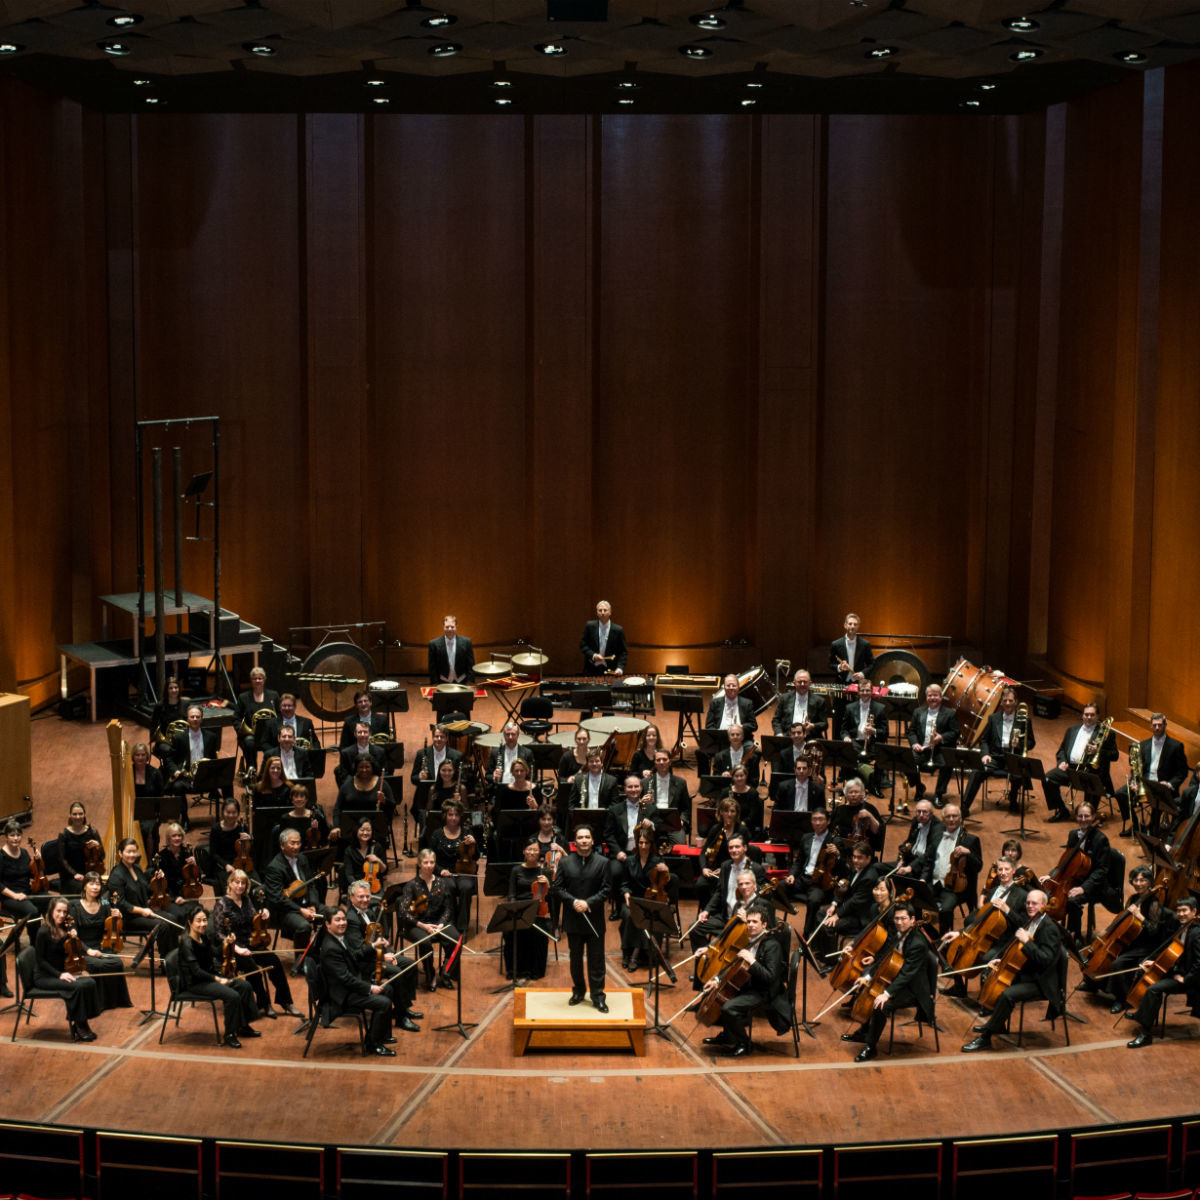 Houston Symphony with conductor Andres Orozco-Estrada